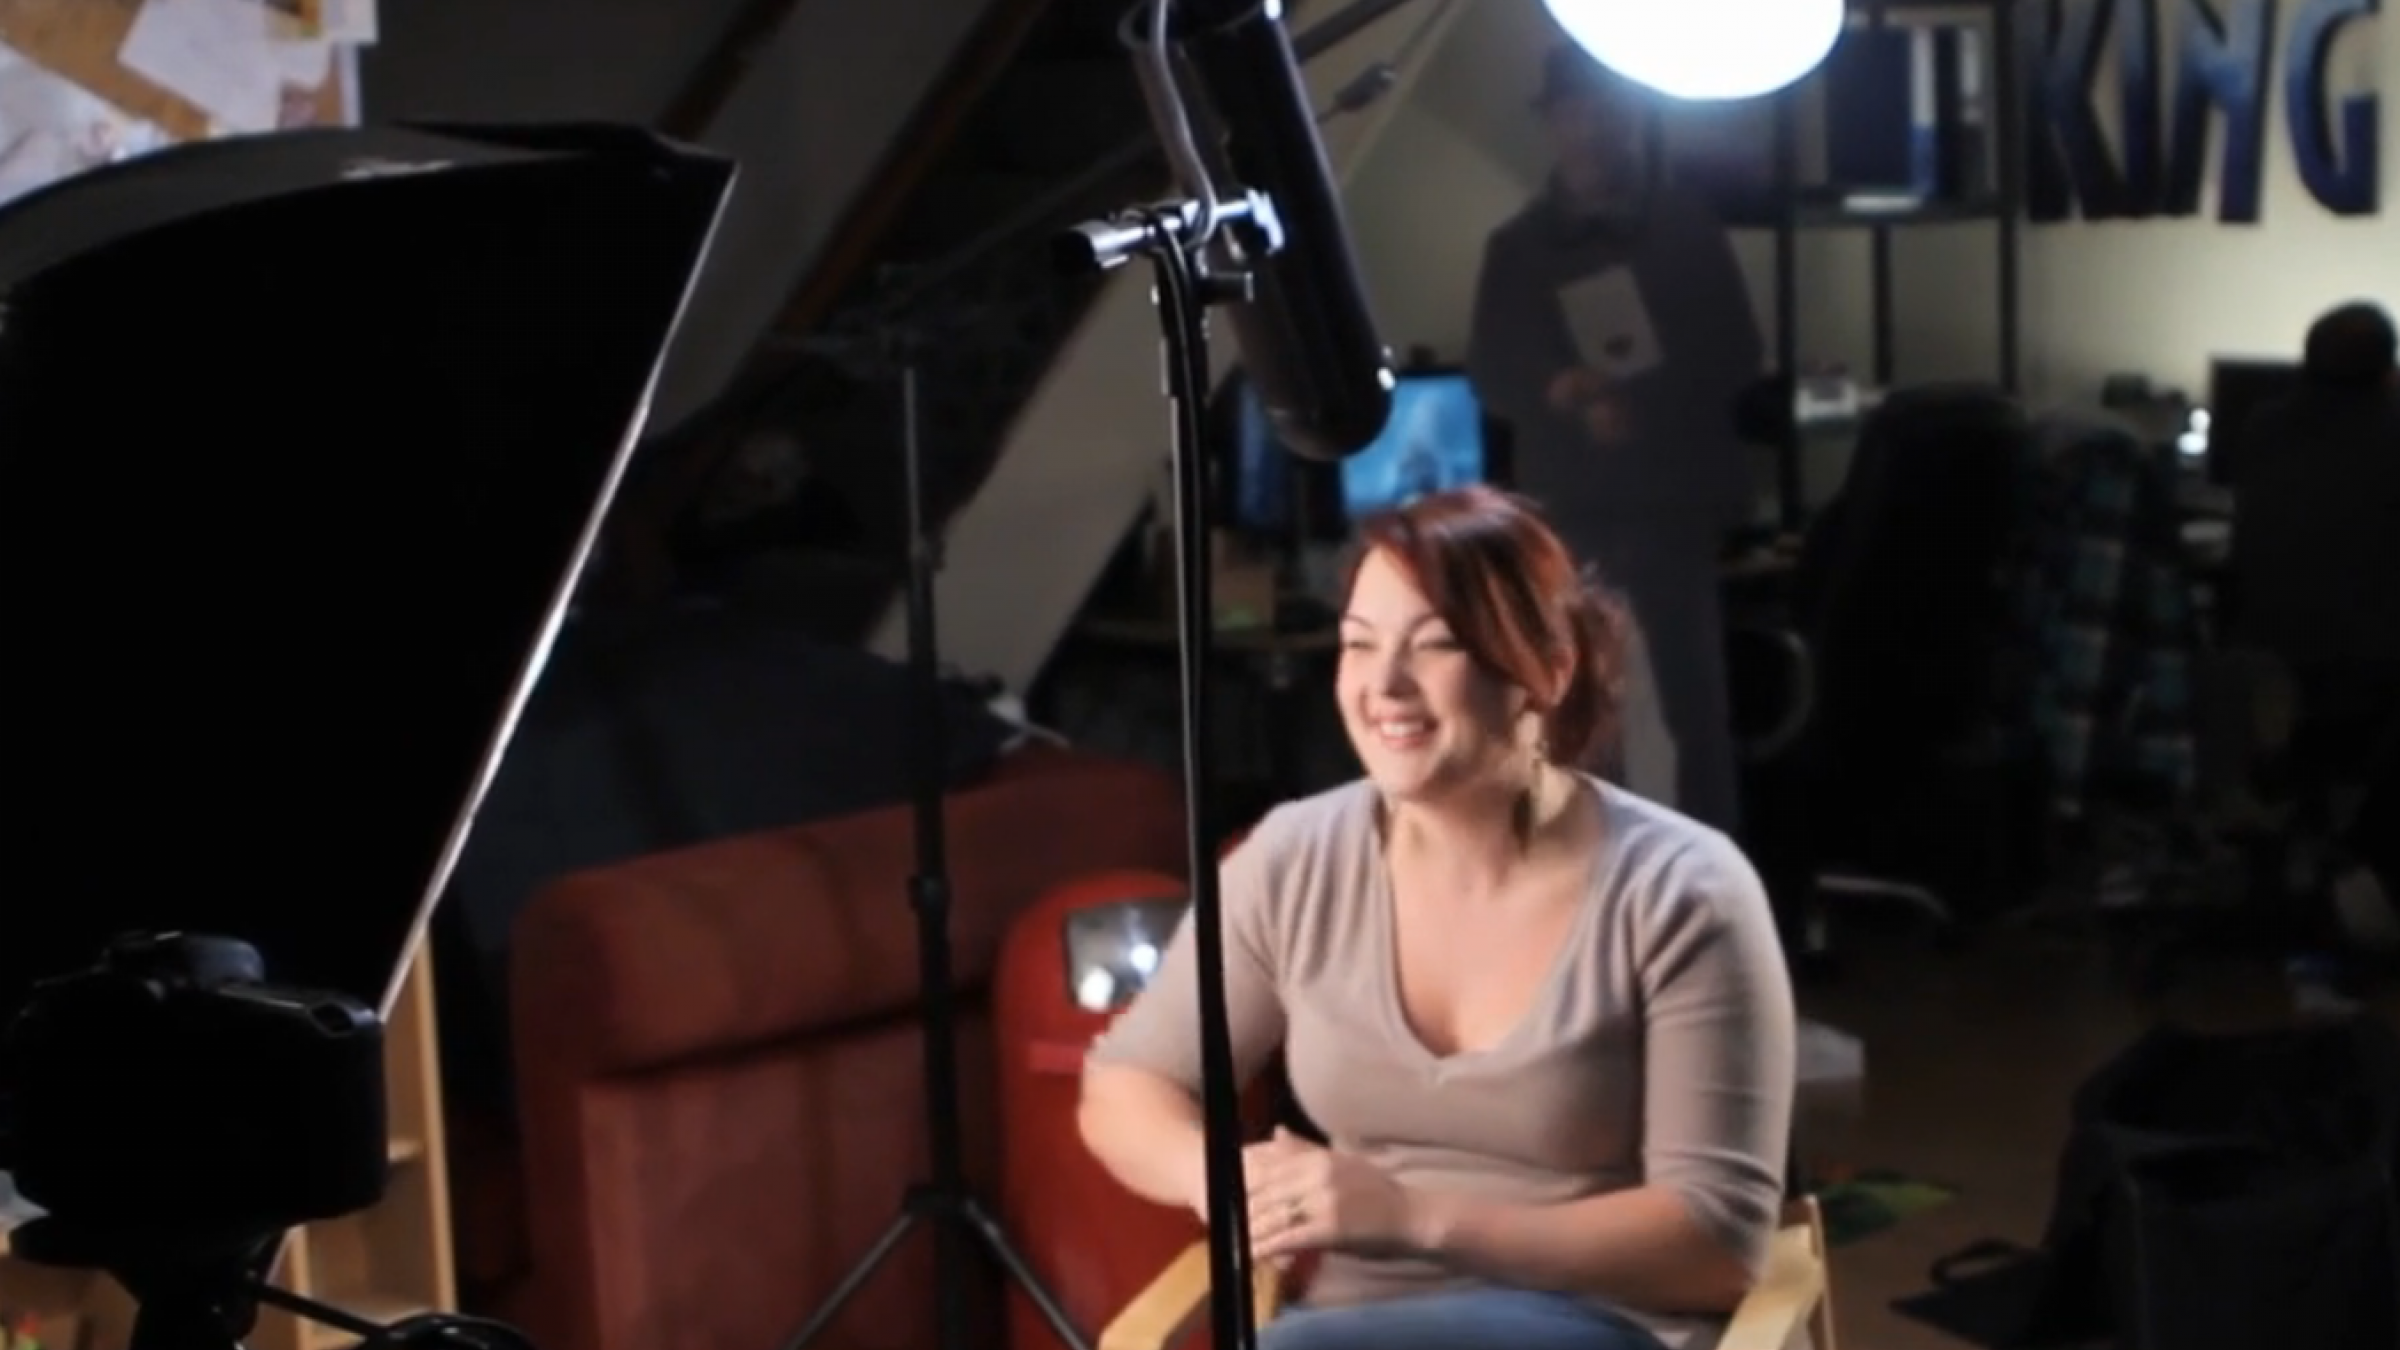 Two Interview Lighting Tutorials That'll Kick Your Footage Up a Notch